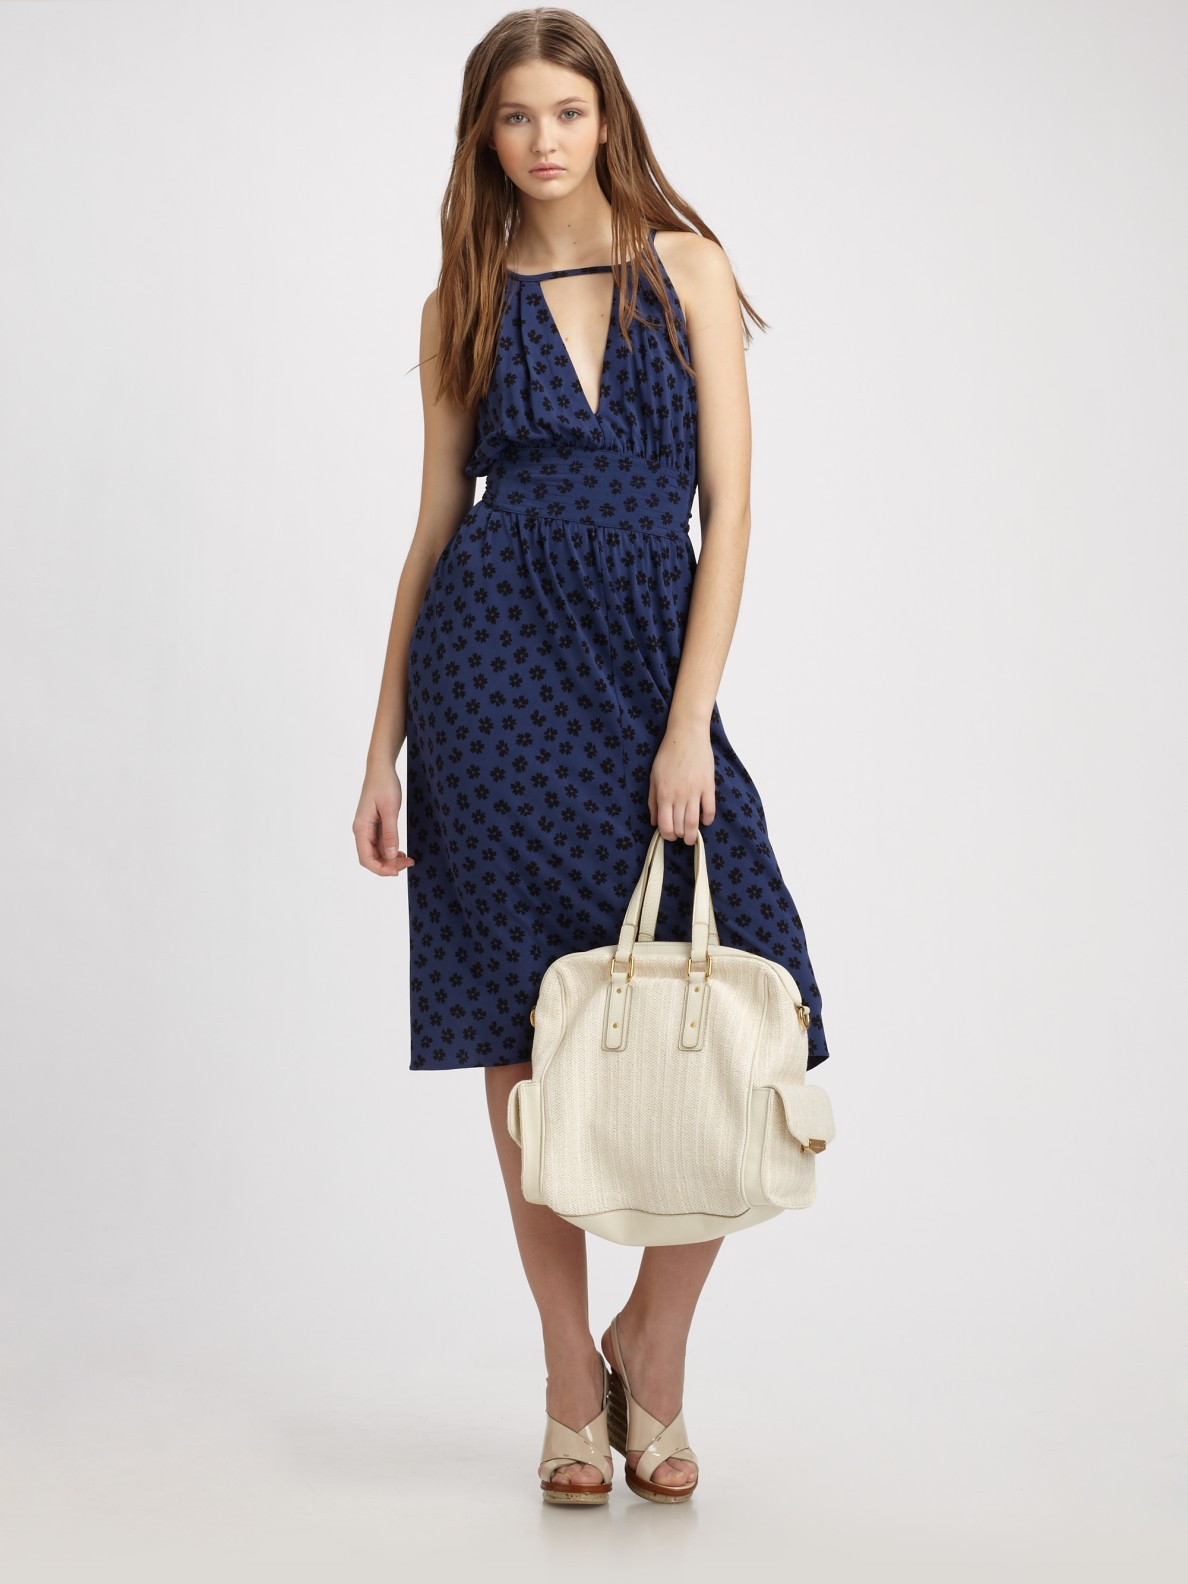 Lyst - Marc By Marc Jacobs Florette Dress in Marine in Blue